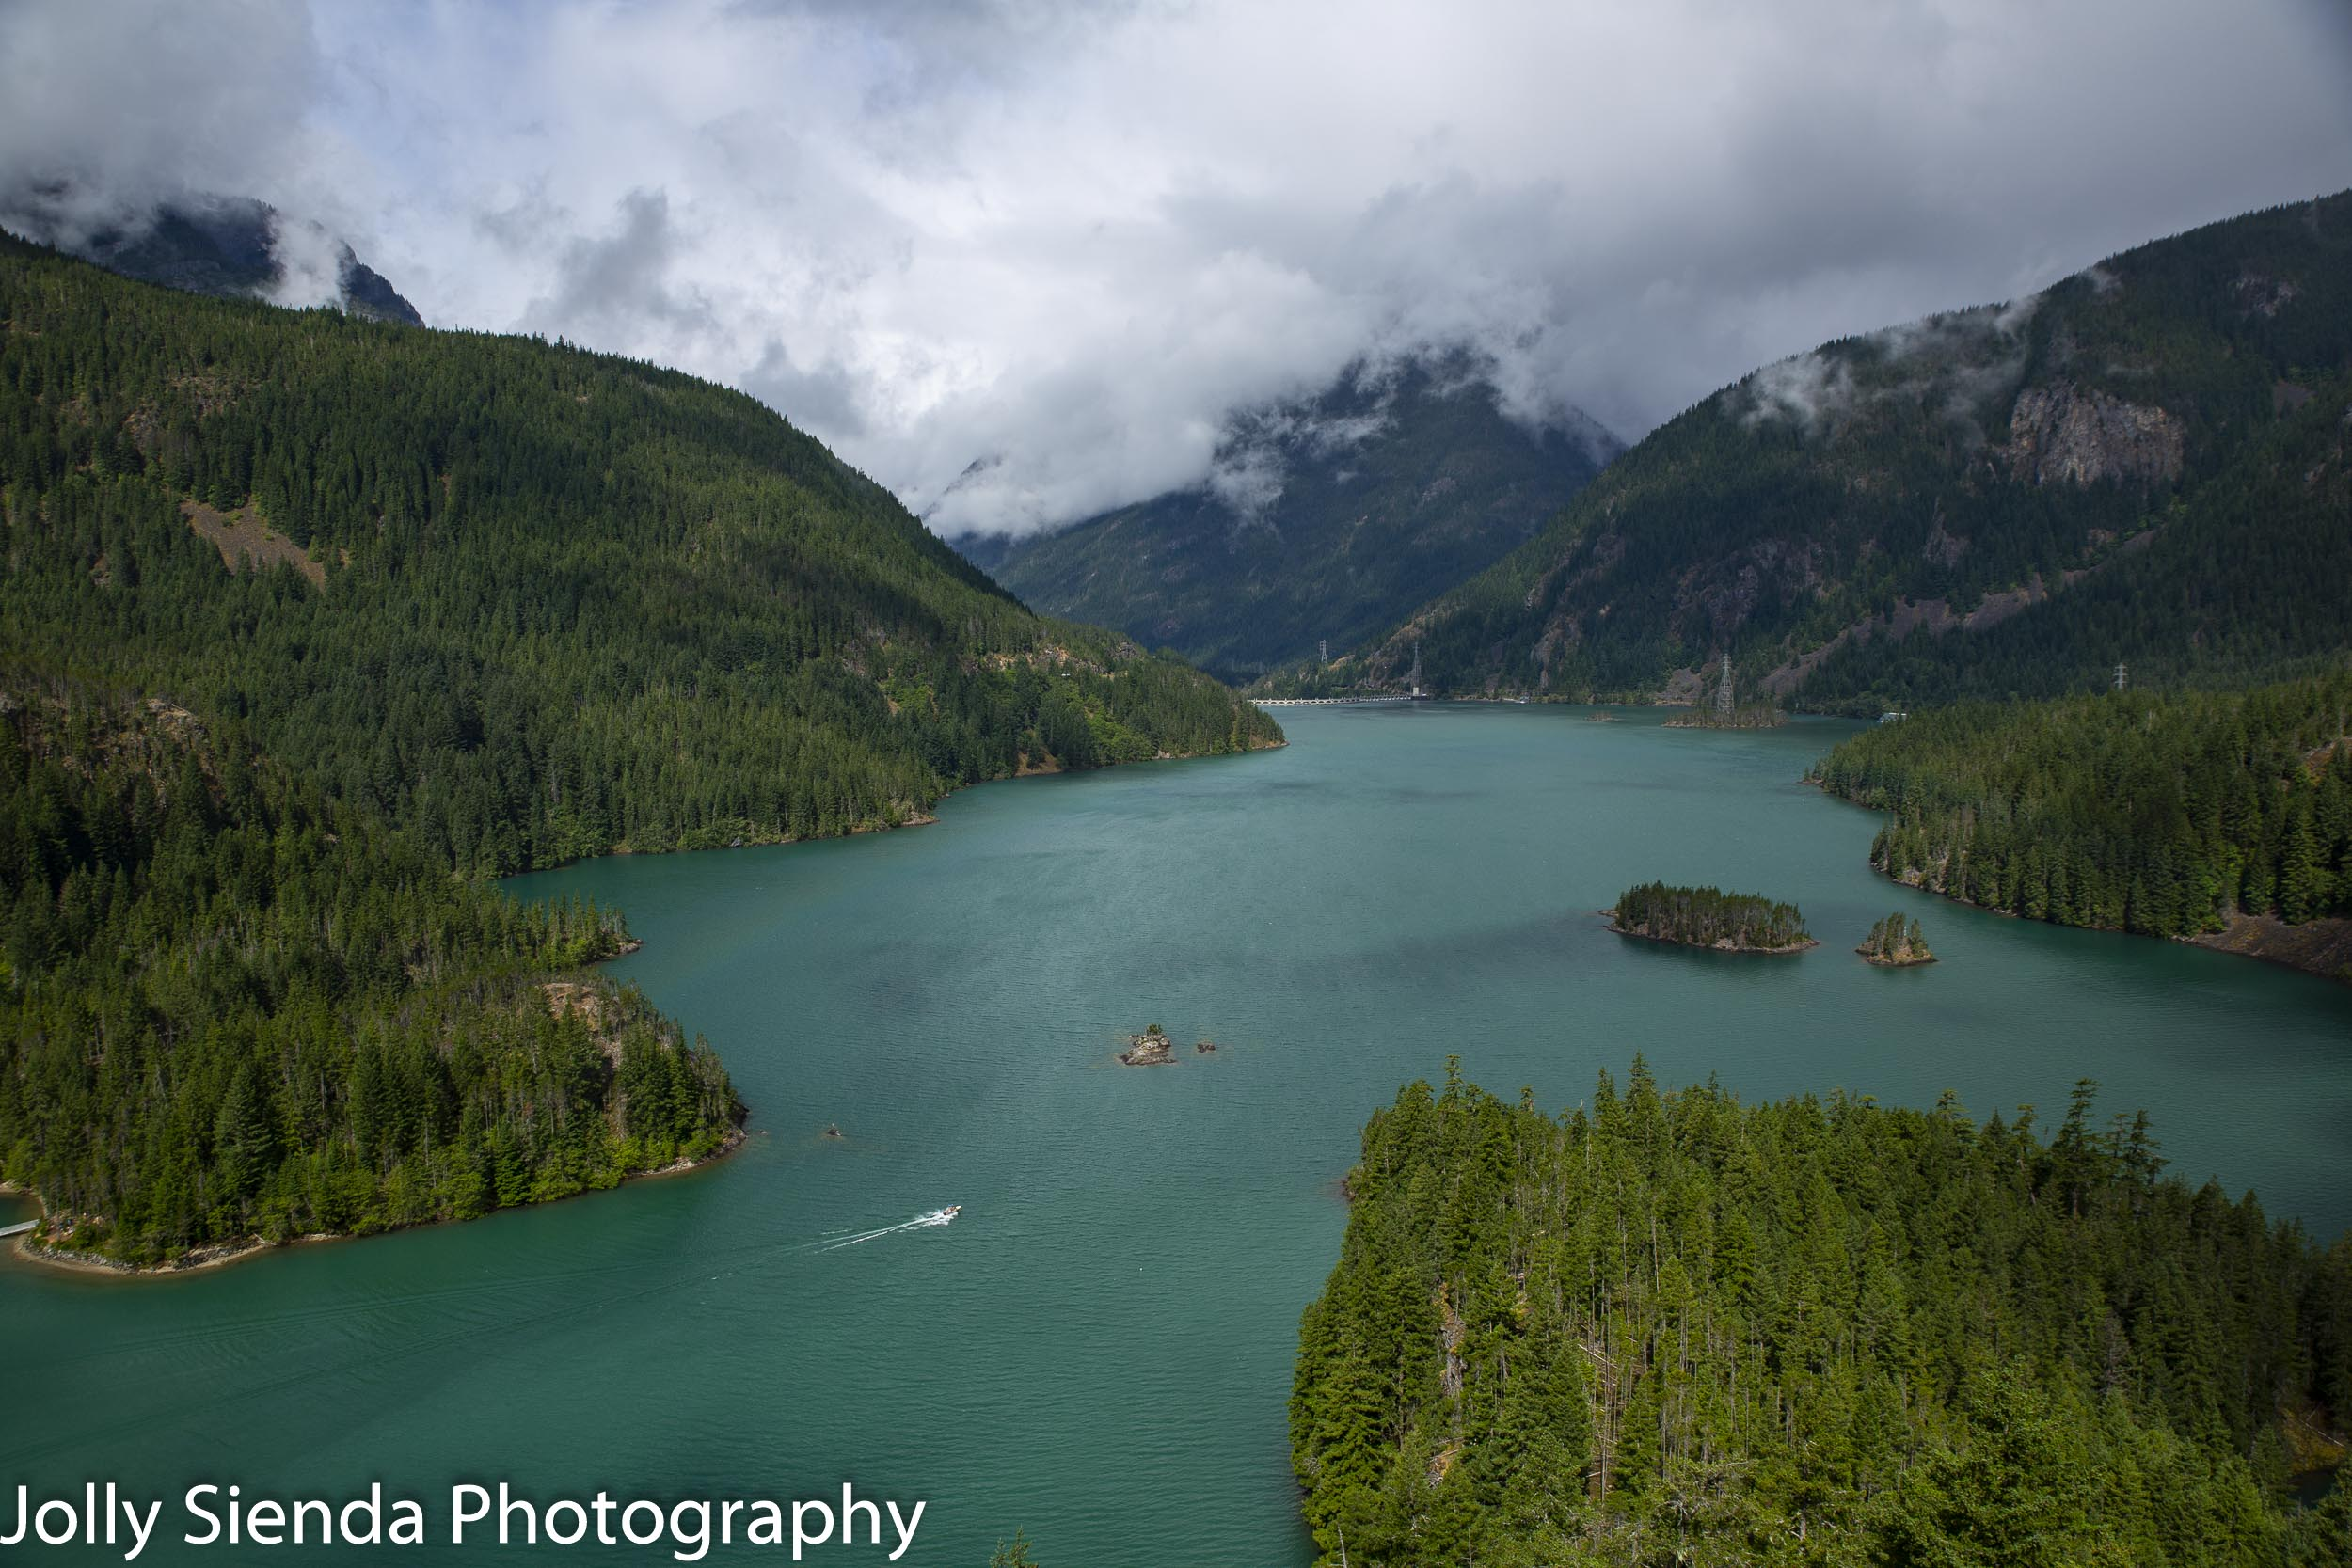 Diablo Lake where you can boat on the lake to the Diablo Dam surrounded by the North Cascades